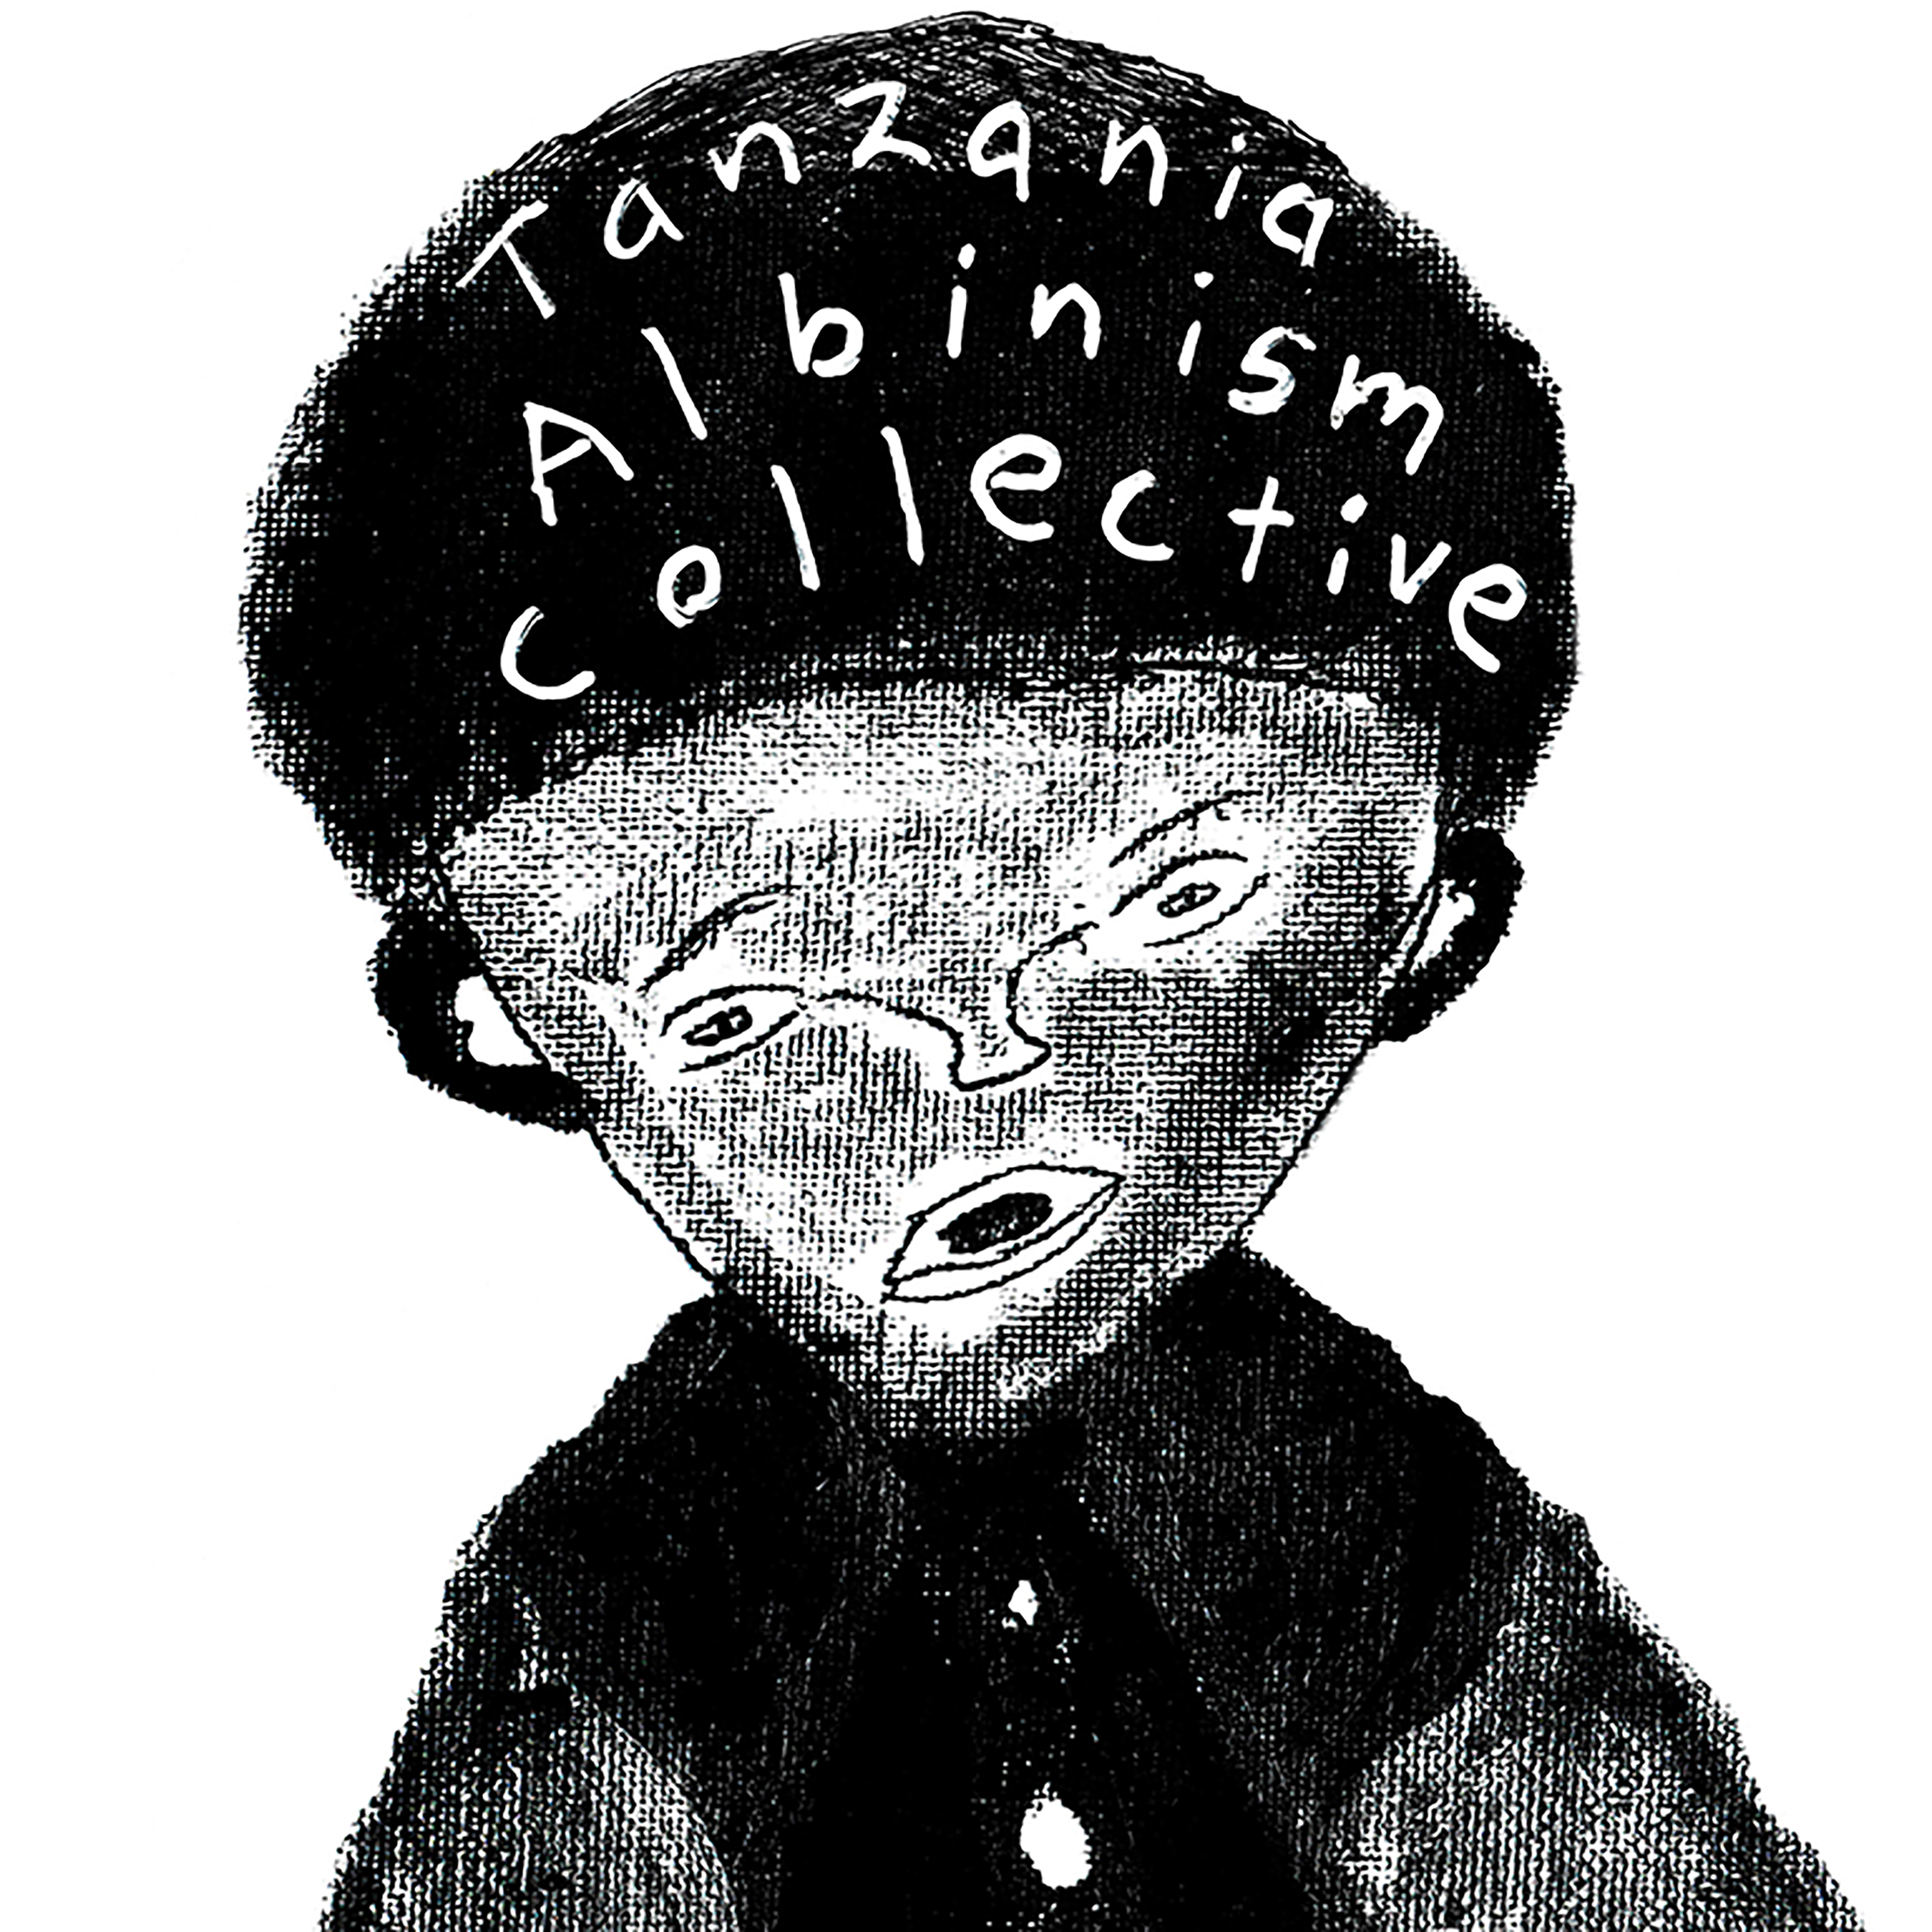 Tanzania Albinism Collective – Our Skin May Be Different, But Our Blood Is The Same